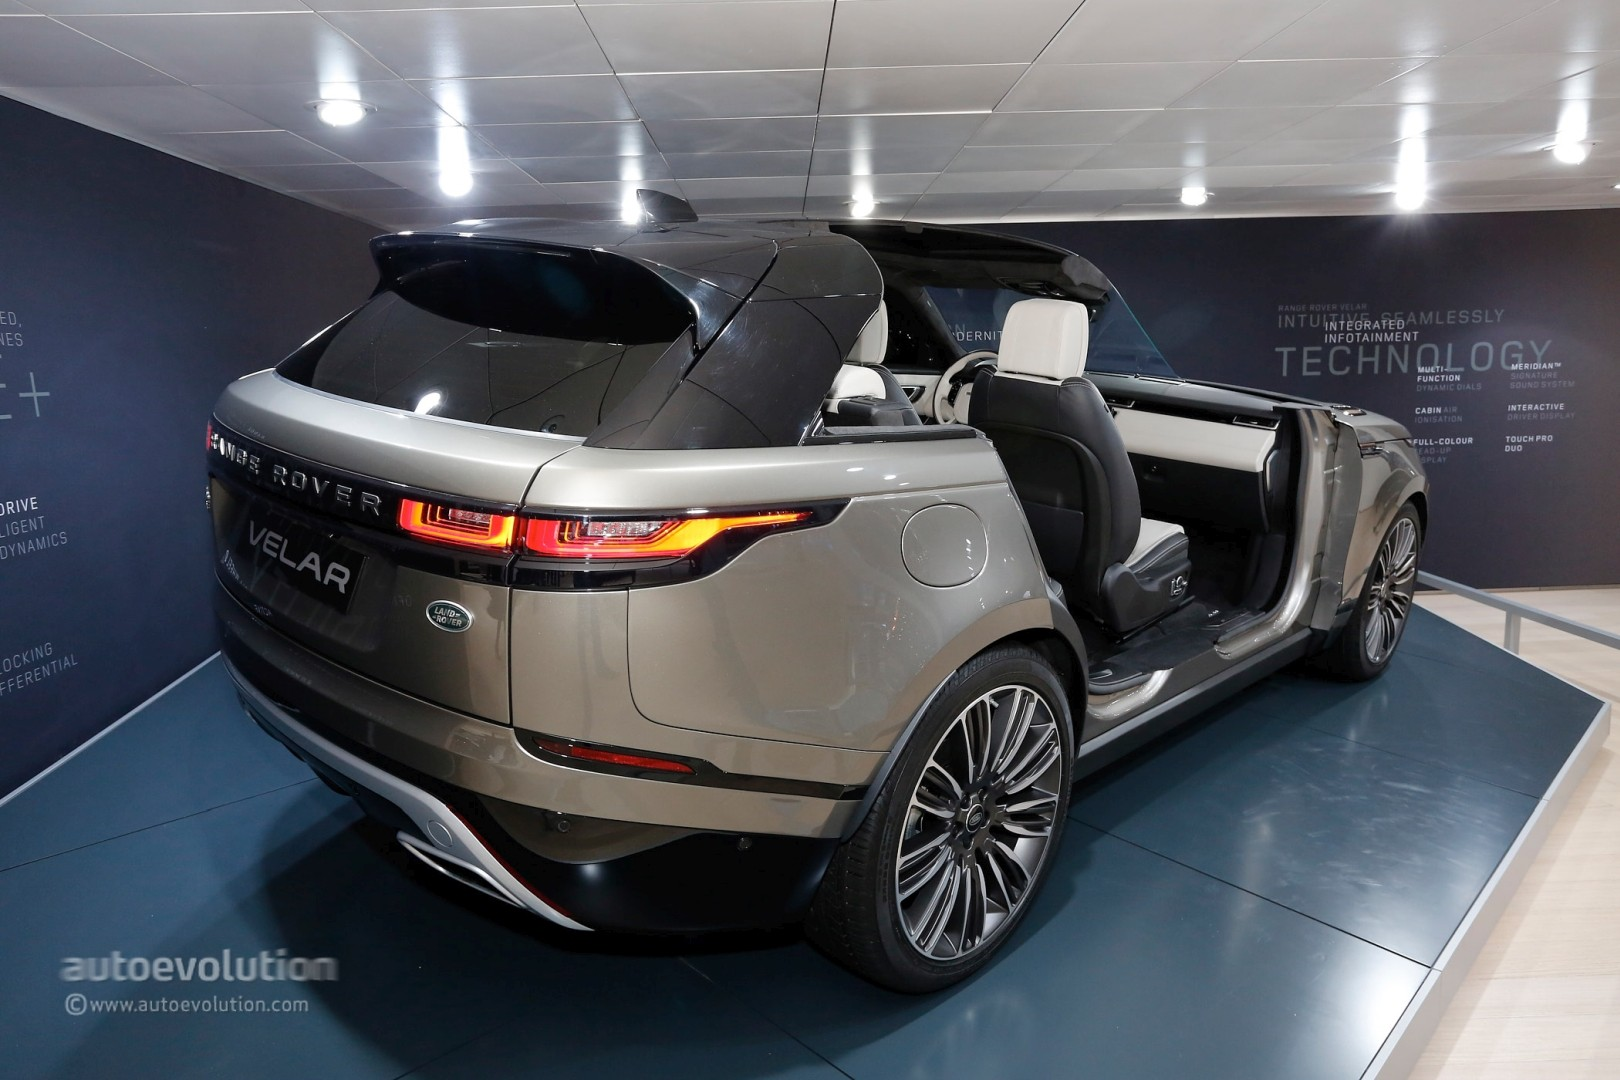 Range Rover Velar Convertible Rendering Looks Like a ...